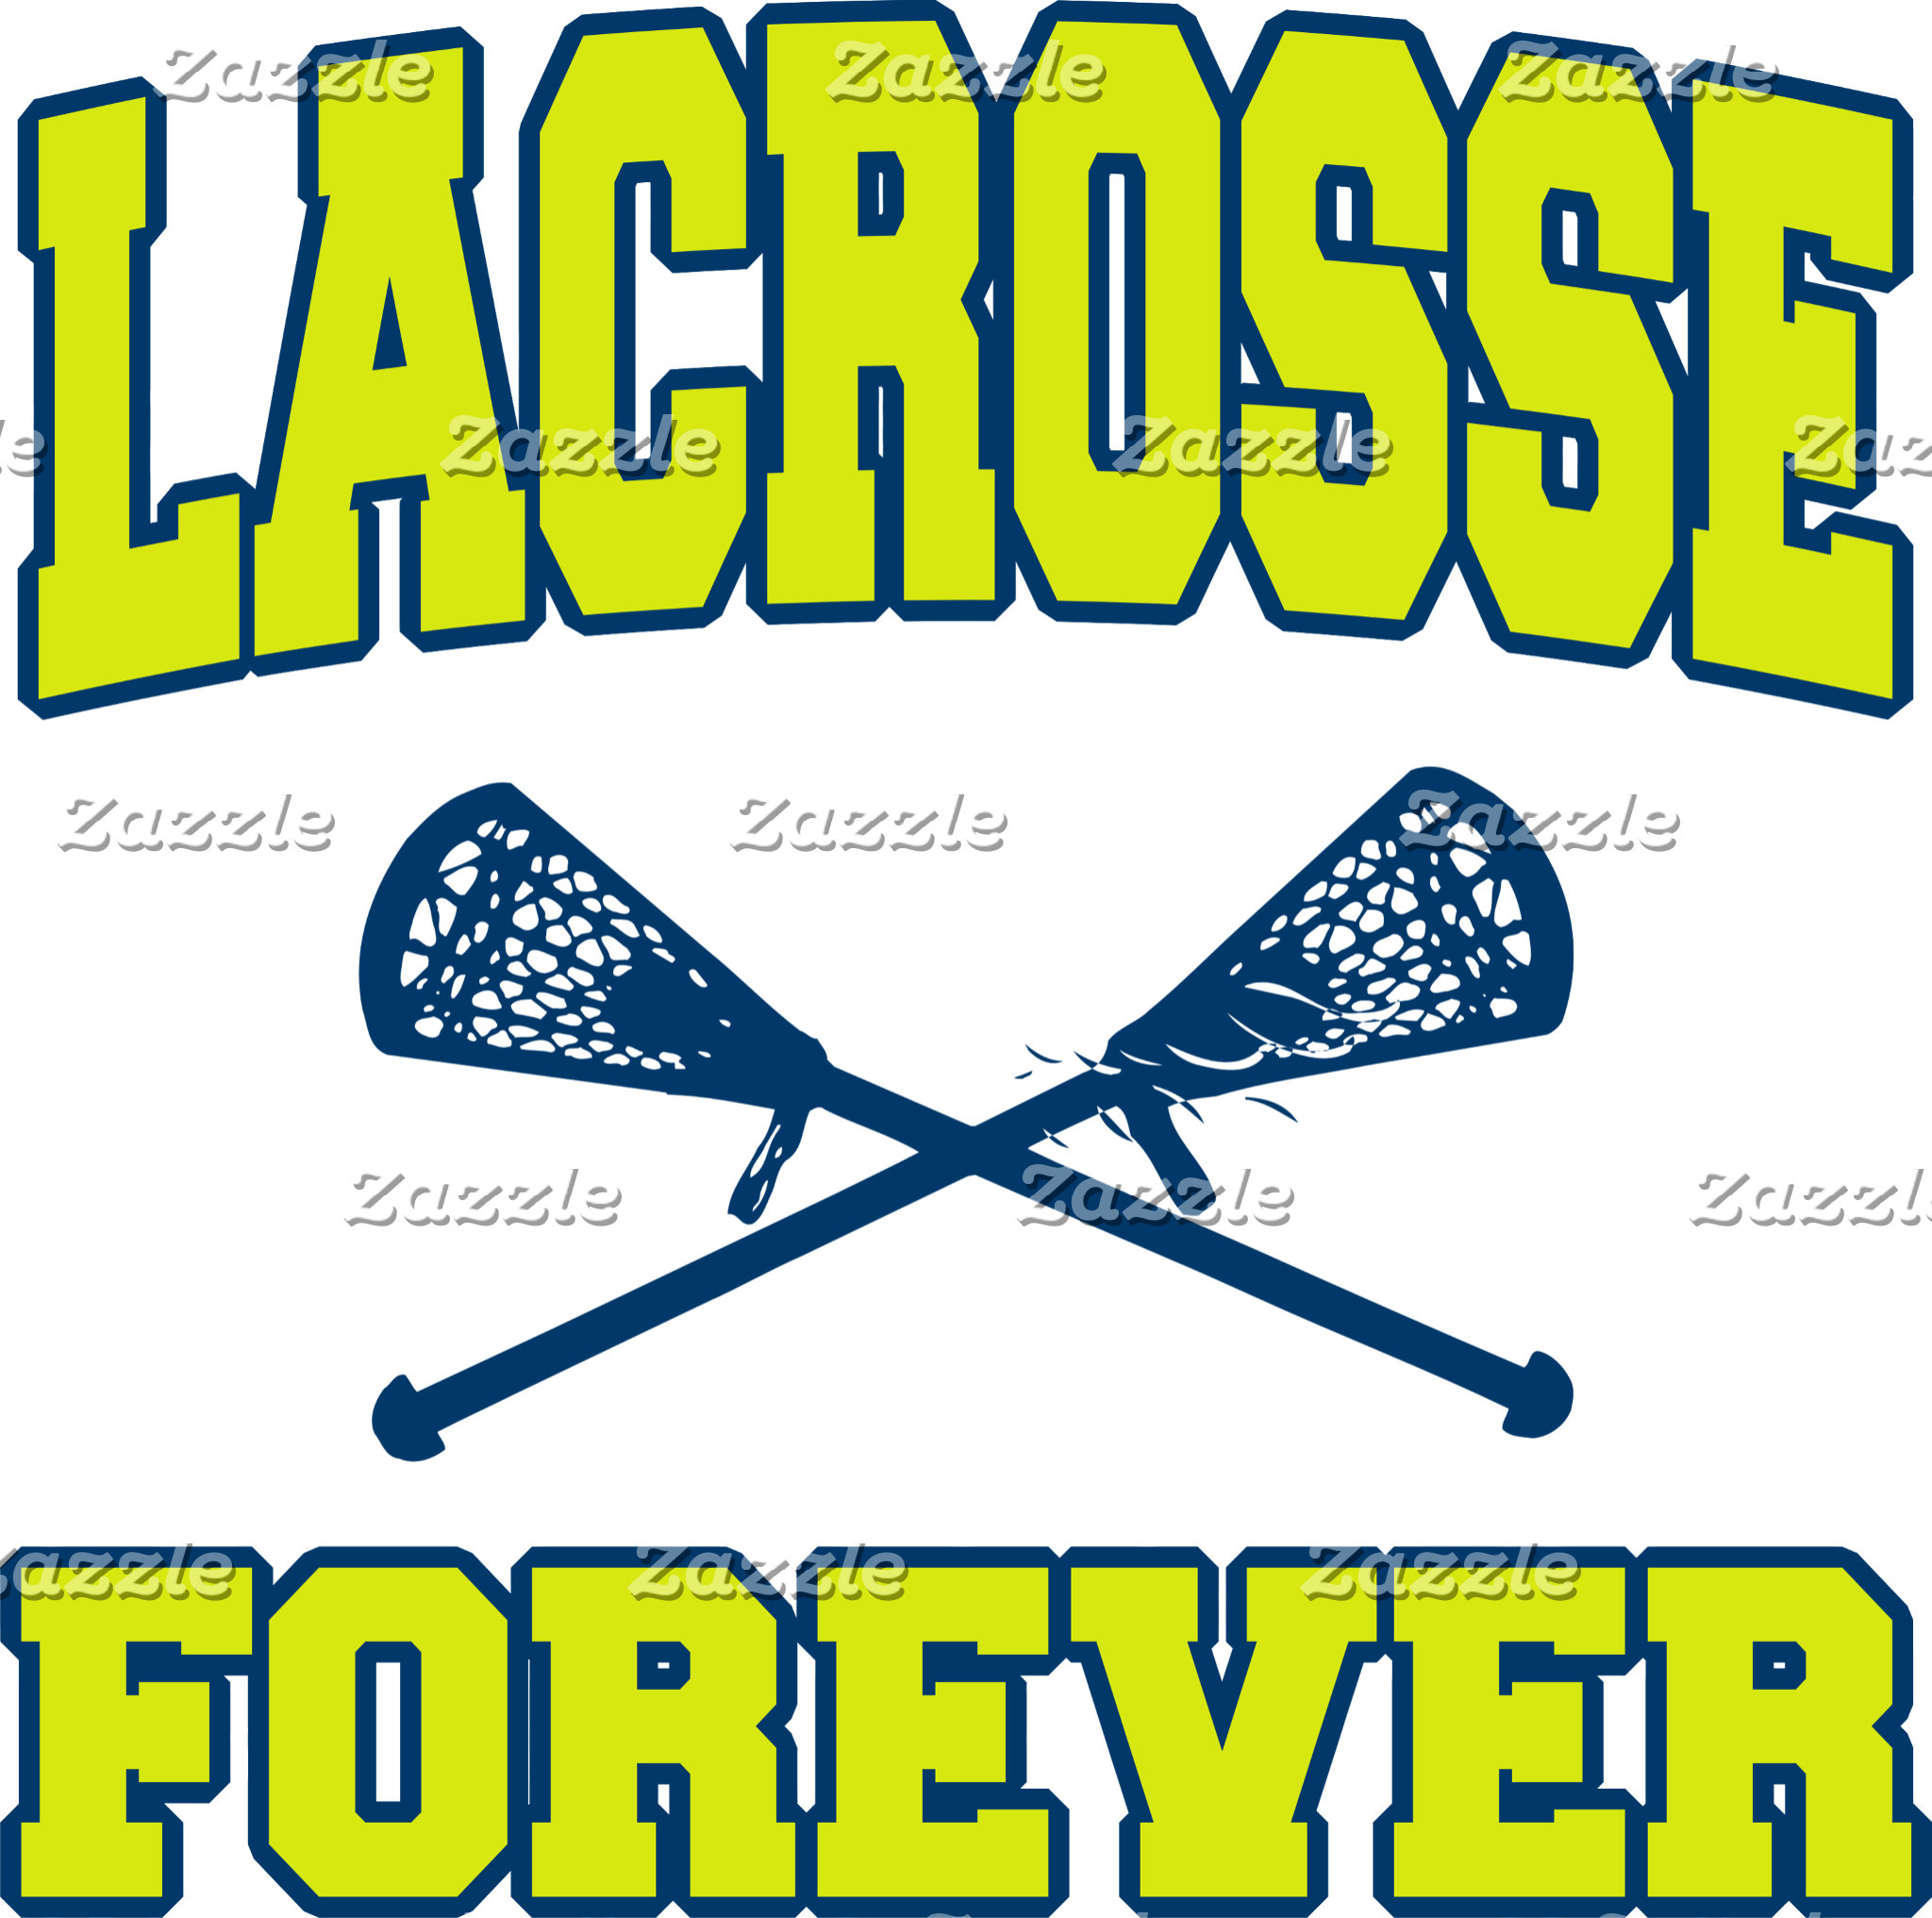 Lacrosse Forever T-Shirts Sweatshirts Gifts